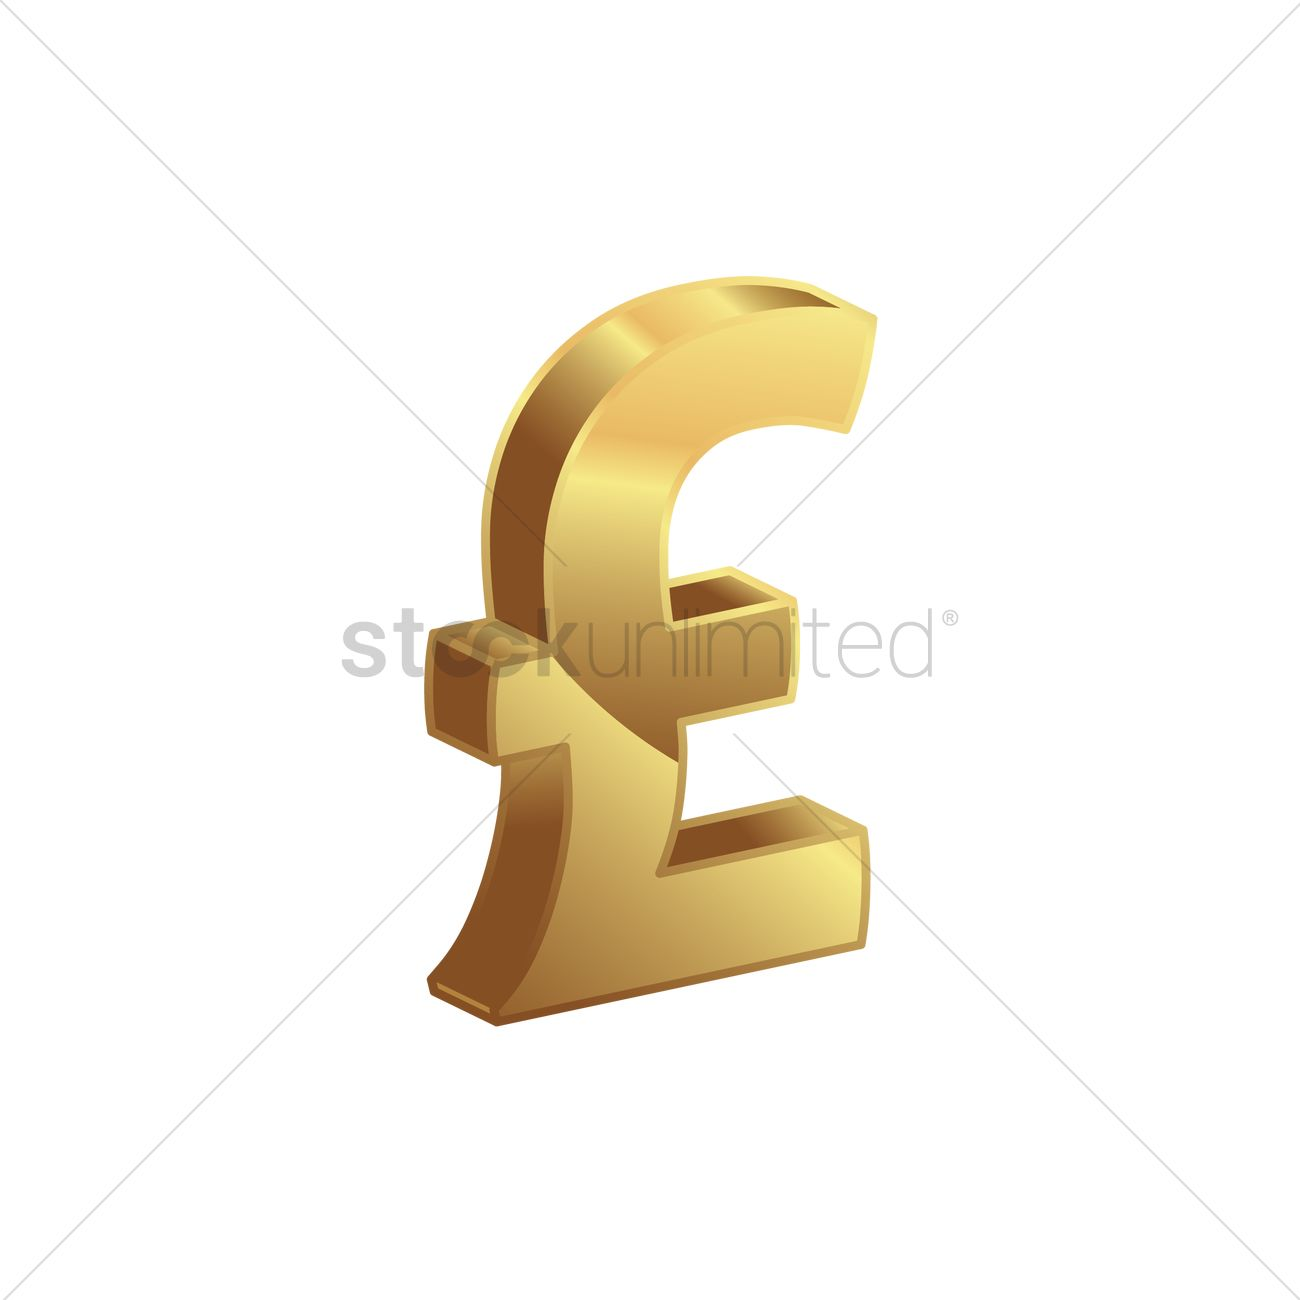 Uk Pound Sterling Vector Image 1871072 Stockunlimited